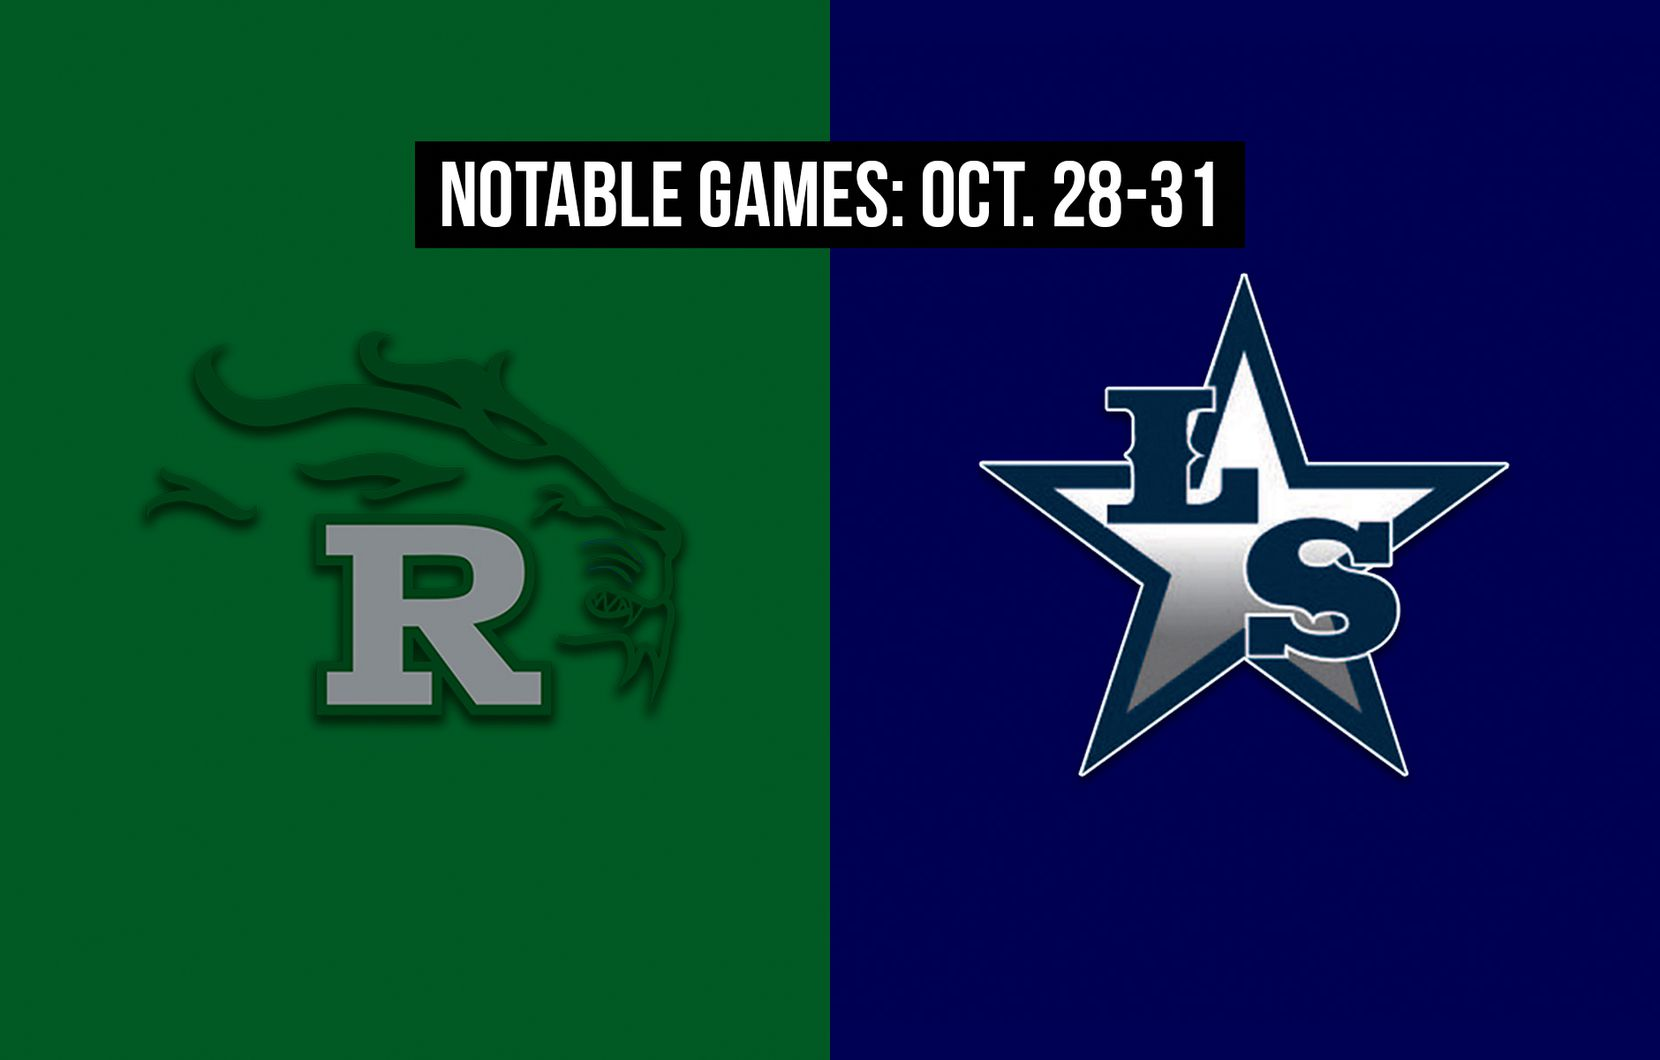 Notable games for the week of Oct. 28-31 of the 2020 season: Frisco Reedy vs. Frisco Lone Star.